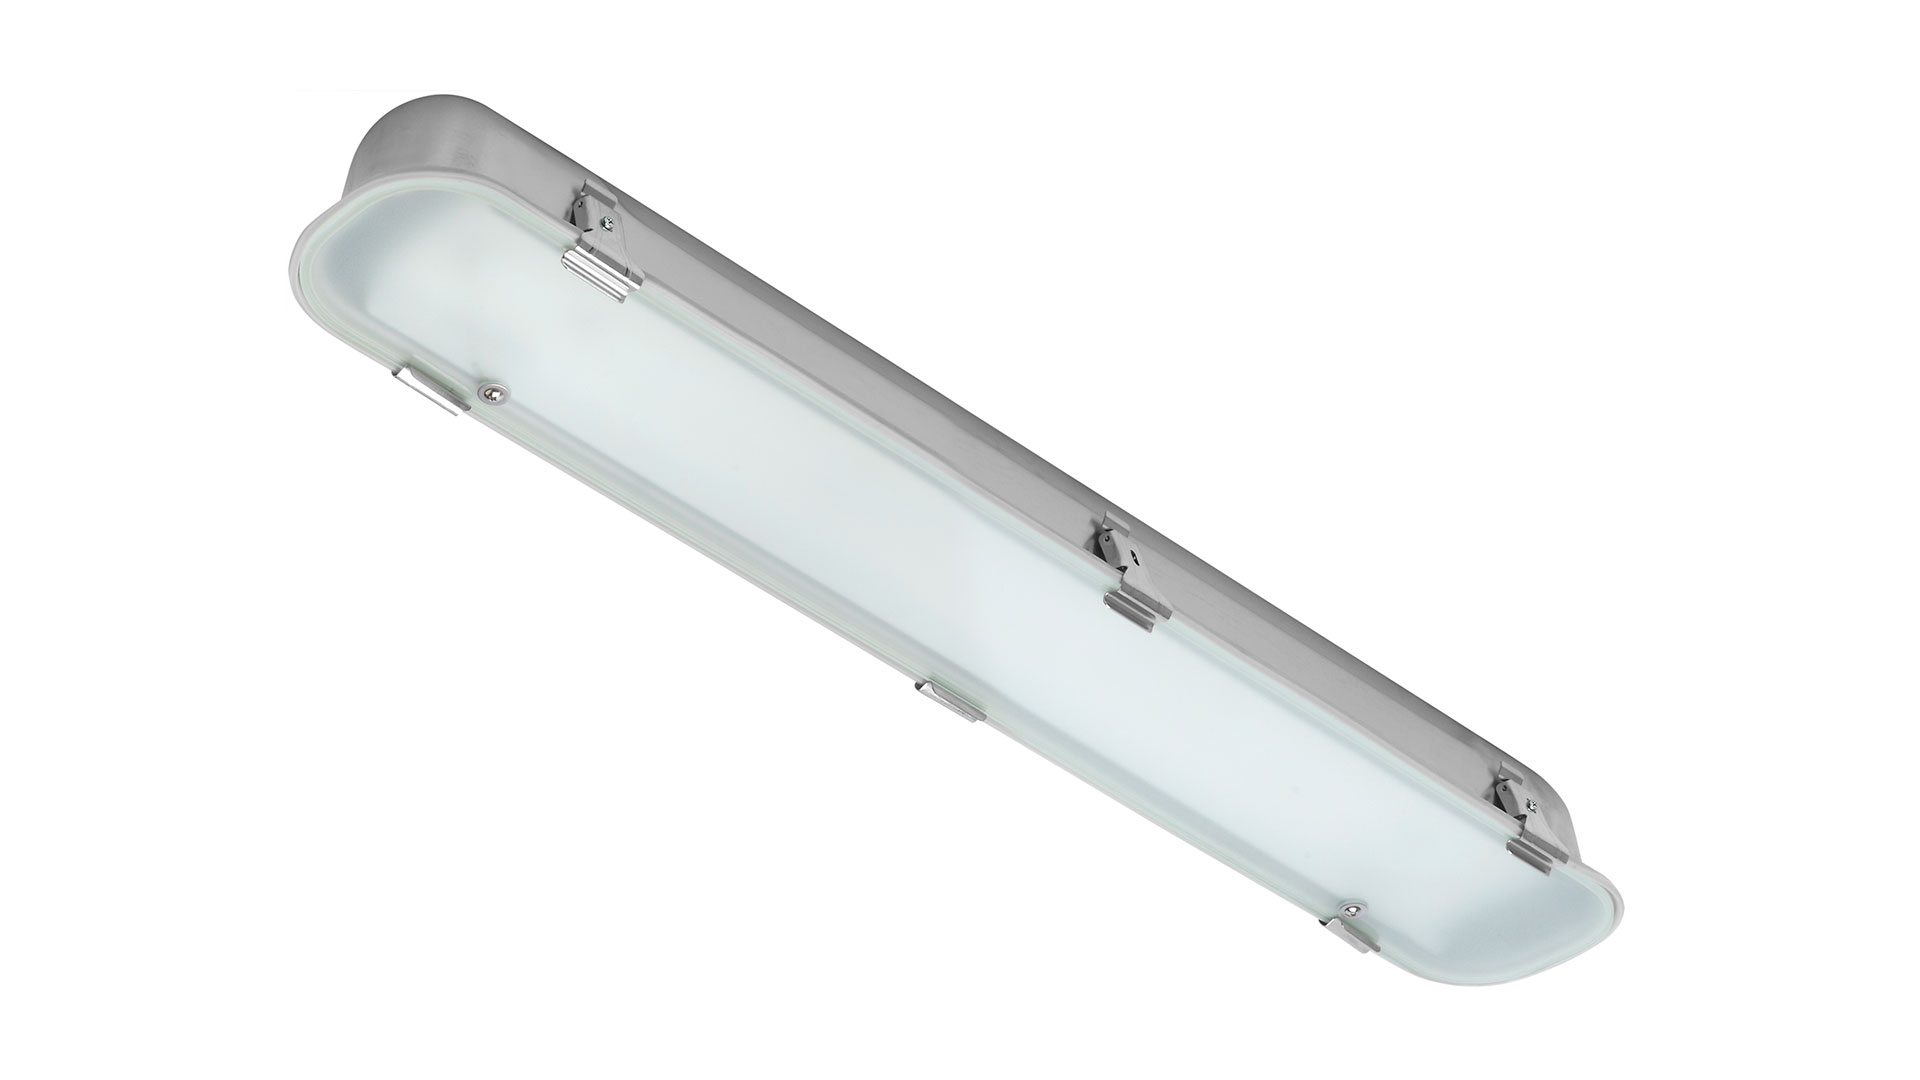 Image de type de produit TDO STEEL LED